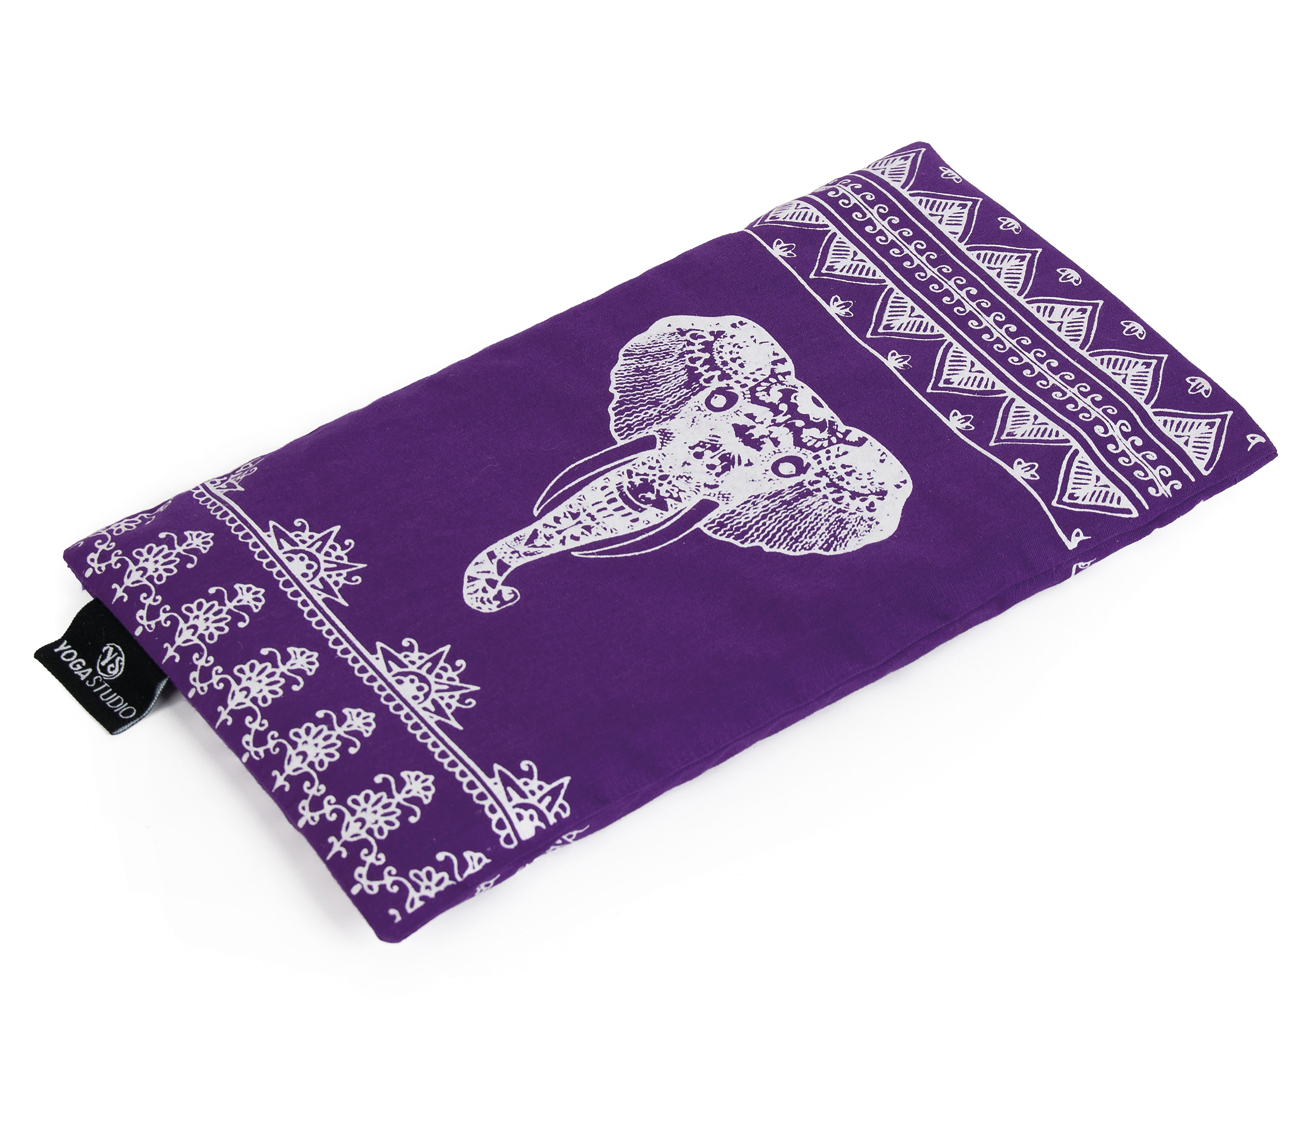 Yoga-Studio-Eye-Pillow-Purple-Big-Elephant-(1)-(002)